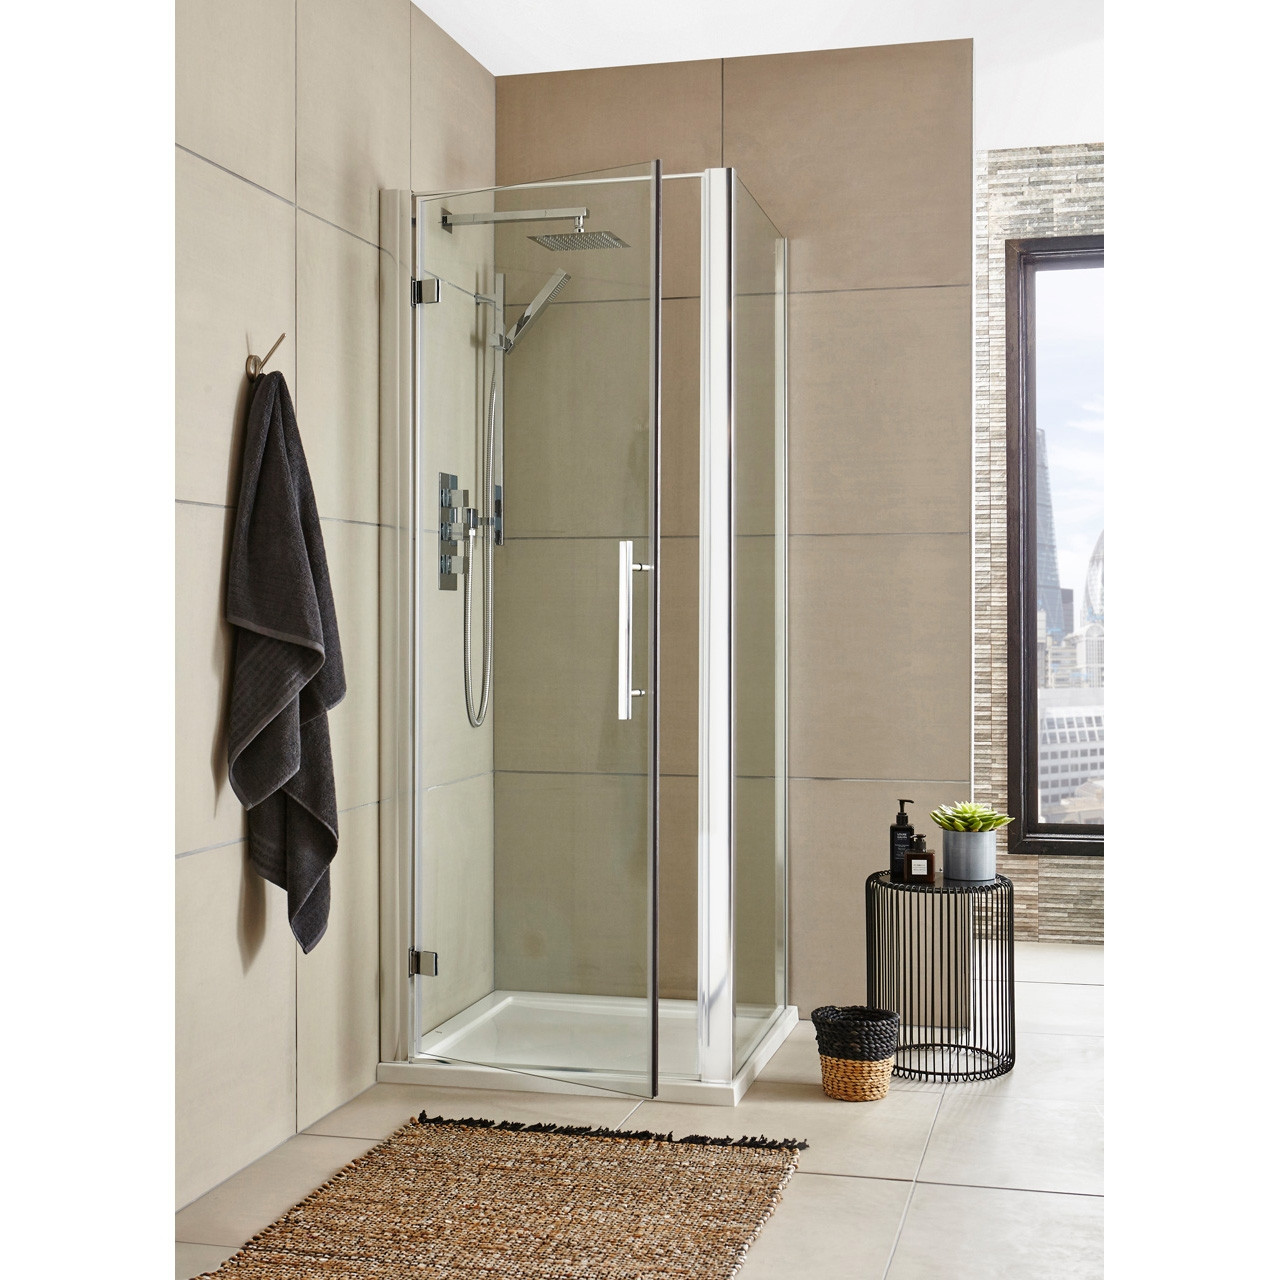 Premier 900mm Hinged Door 8mm Thick - MH90-E8